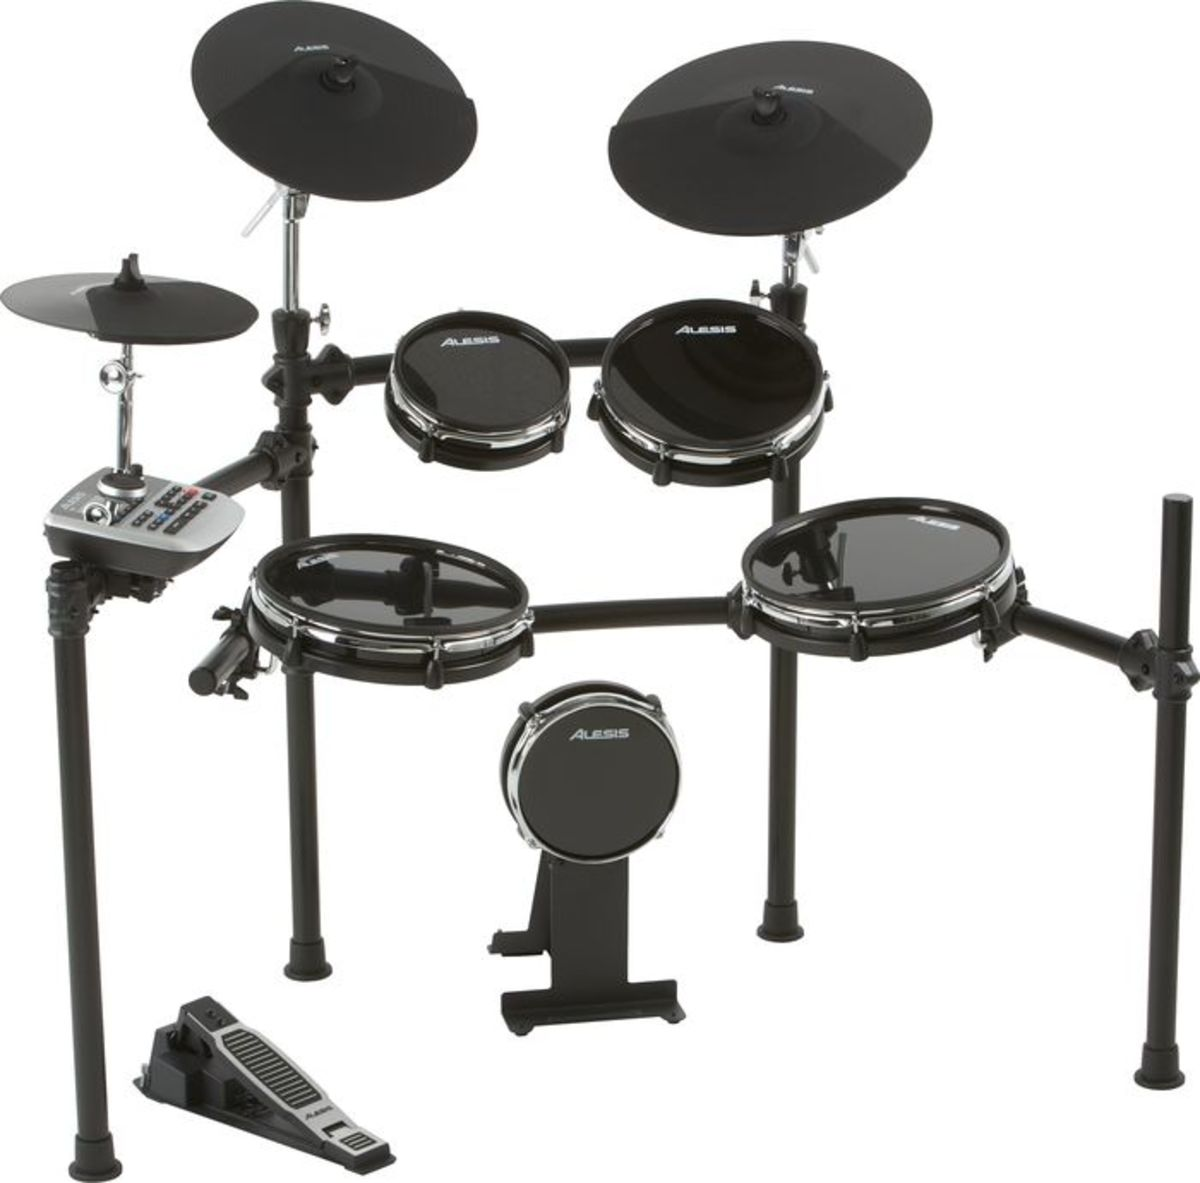 2019 39 s best electronic drum sets for kids and beginners spinditty. Black Bedroom Furniture Sets. Home Design Ideas